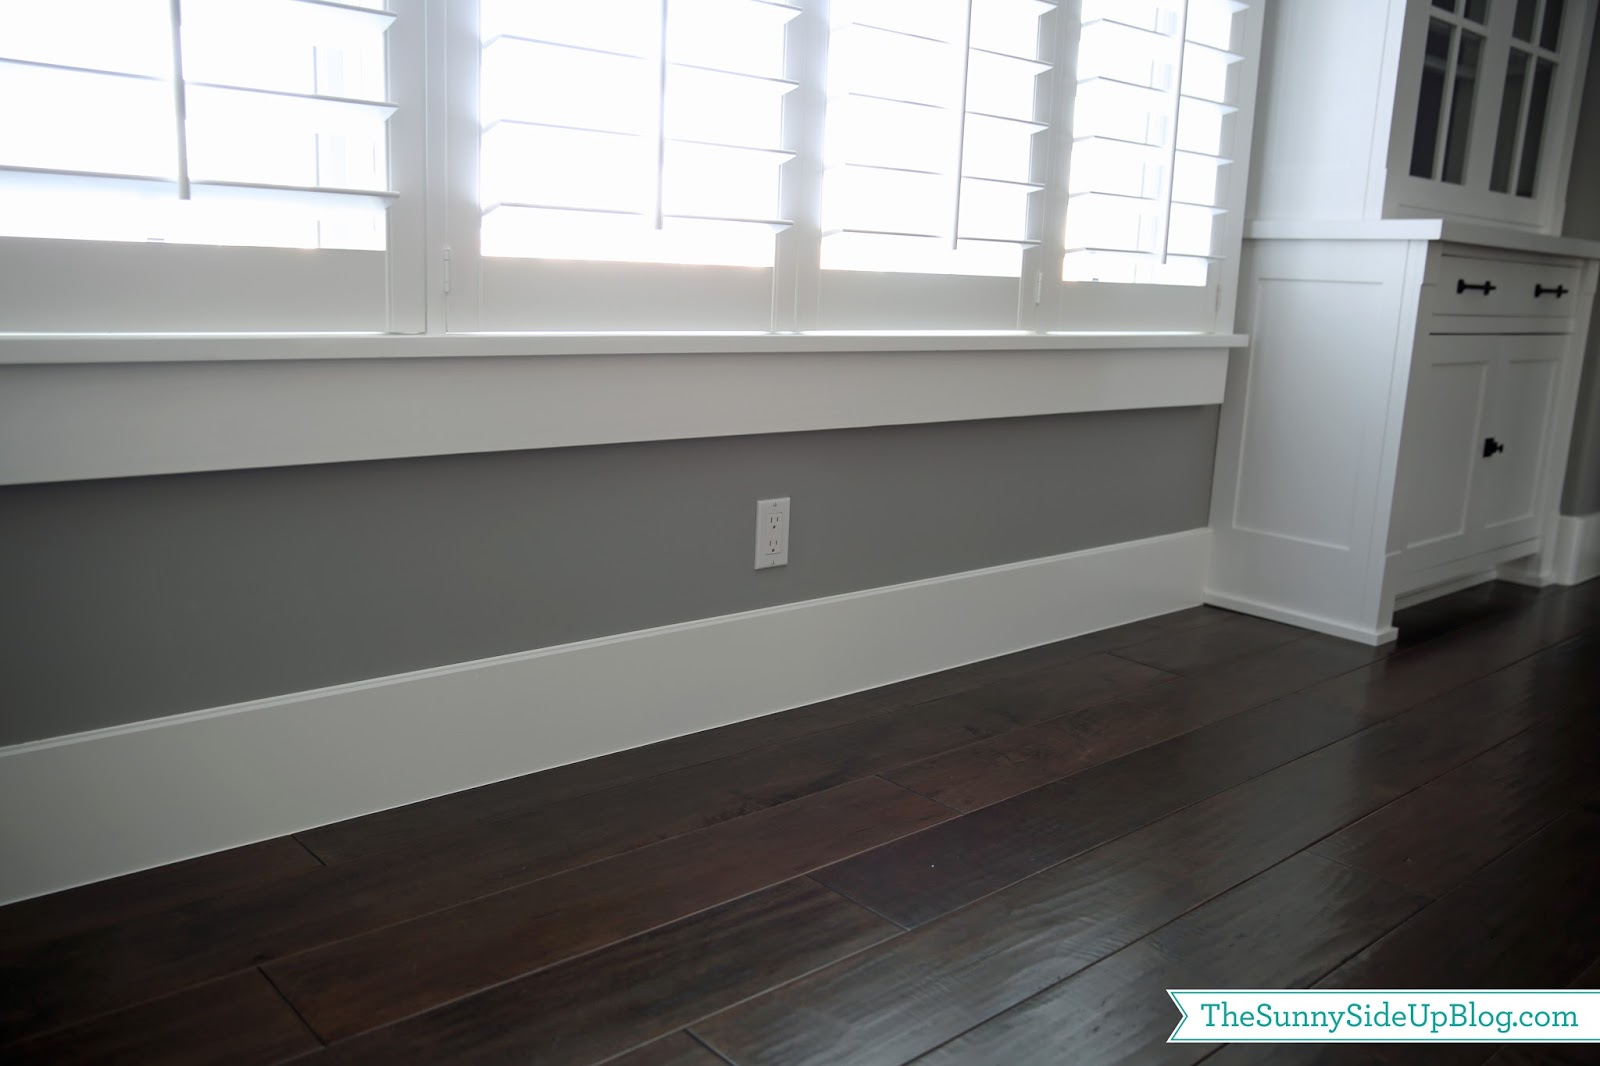 Formal dining room decor plan the sunny side up blog for Baseboard and door trim